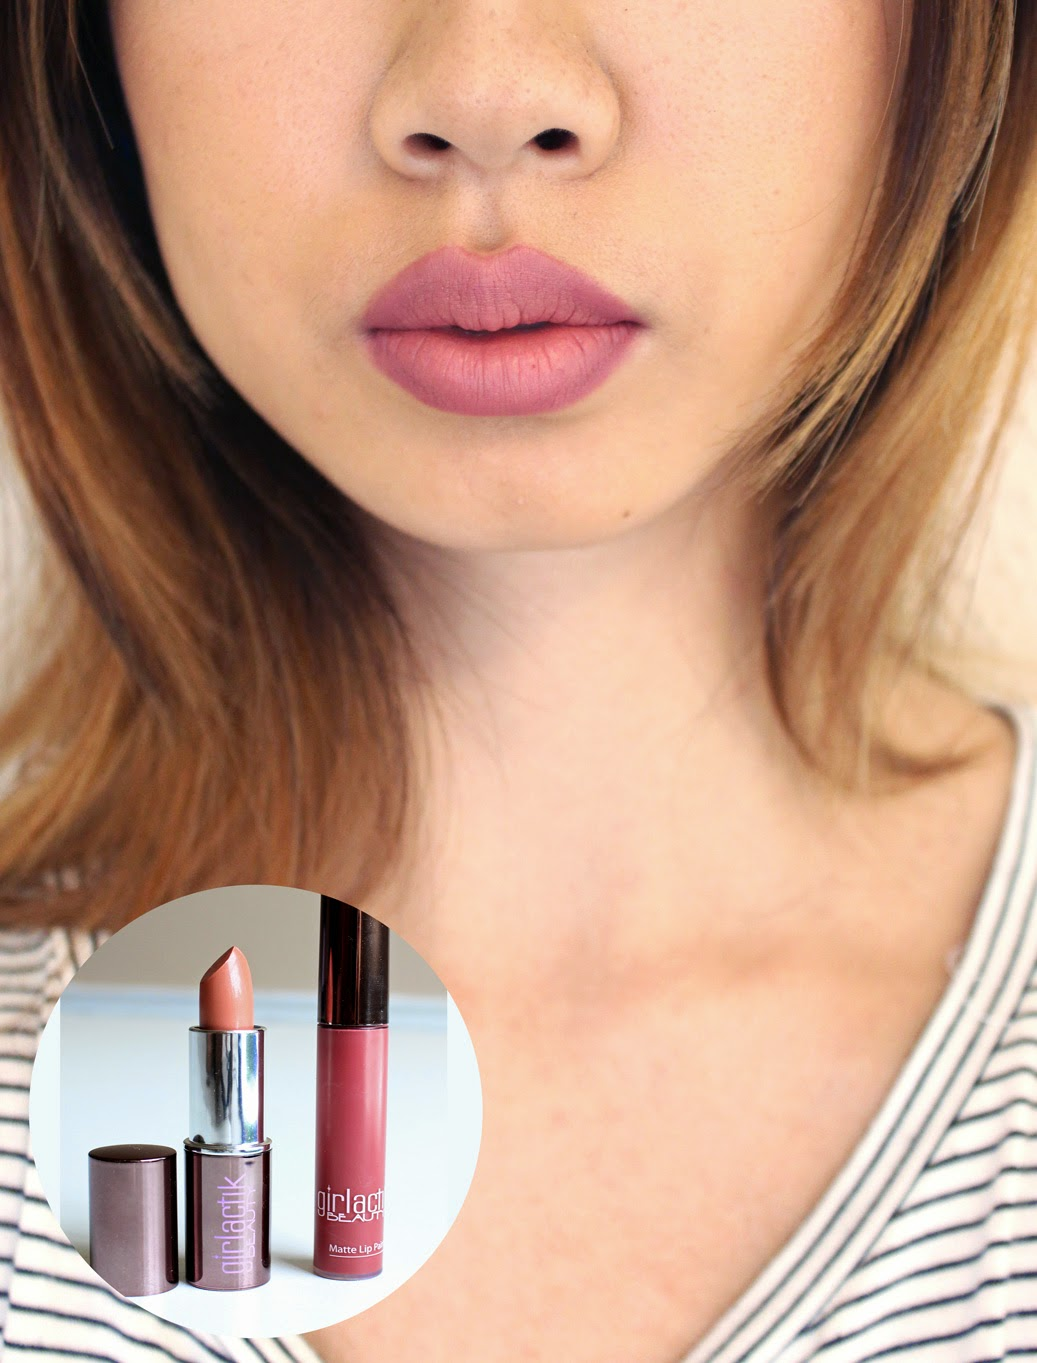 Kylie Jenner Lip Color: How To Get The Look Feat. High End